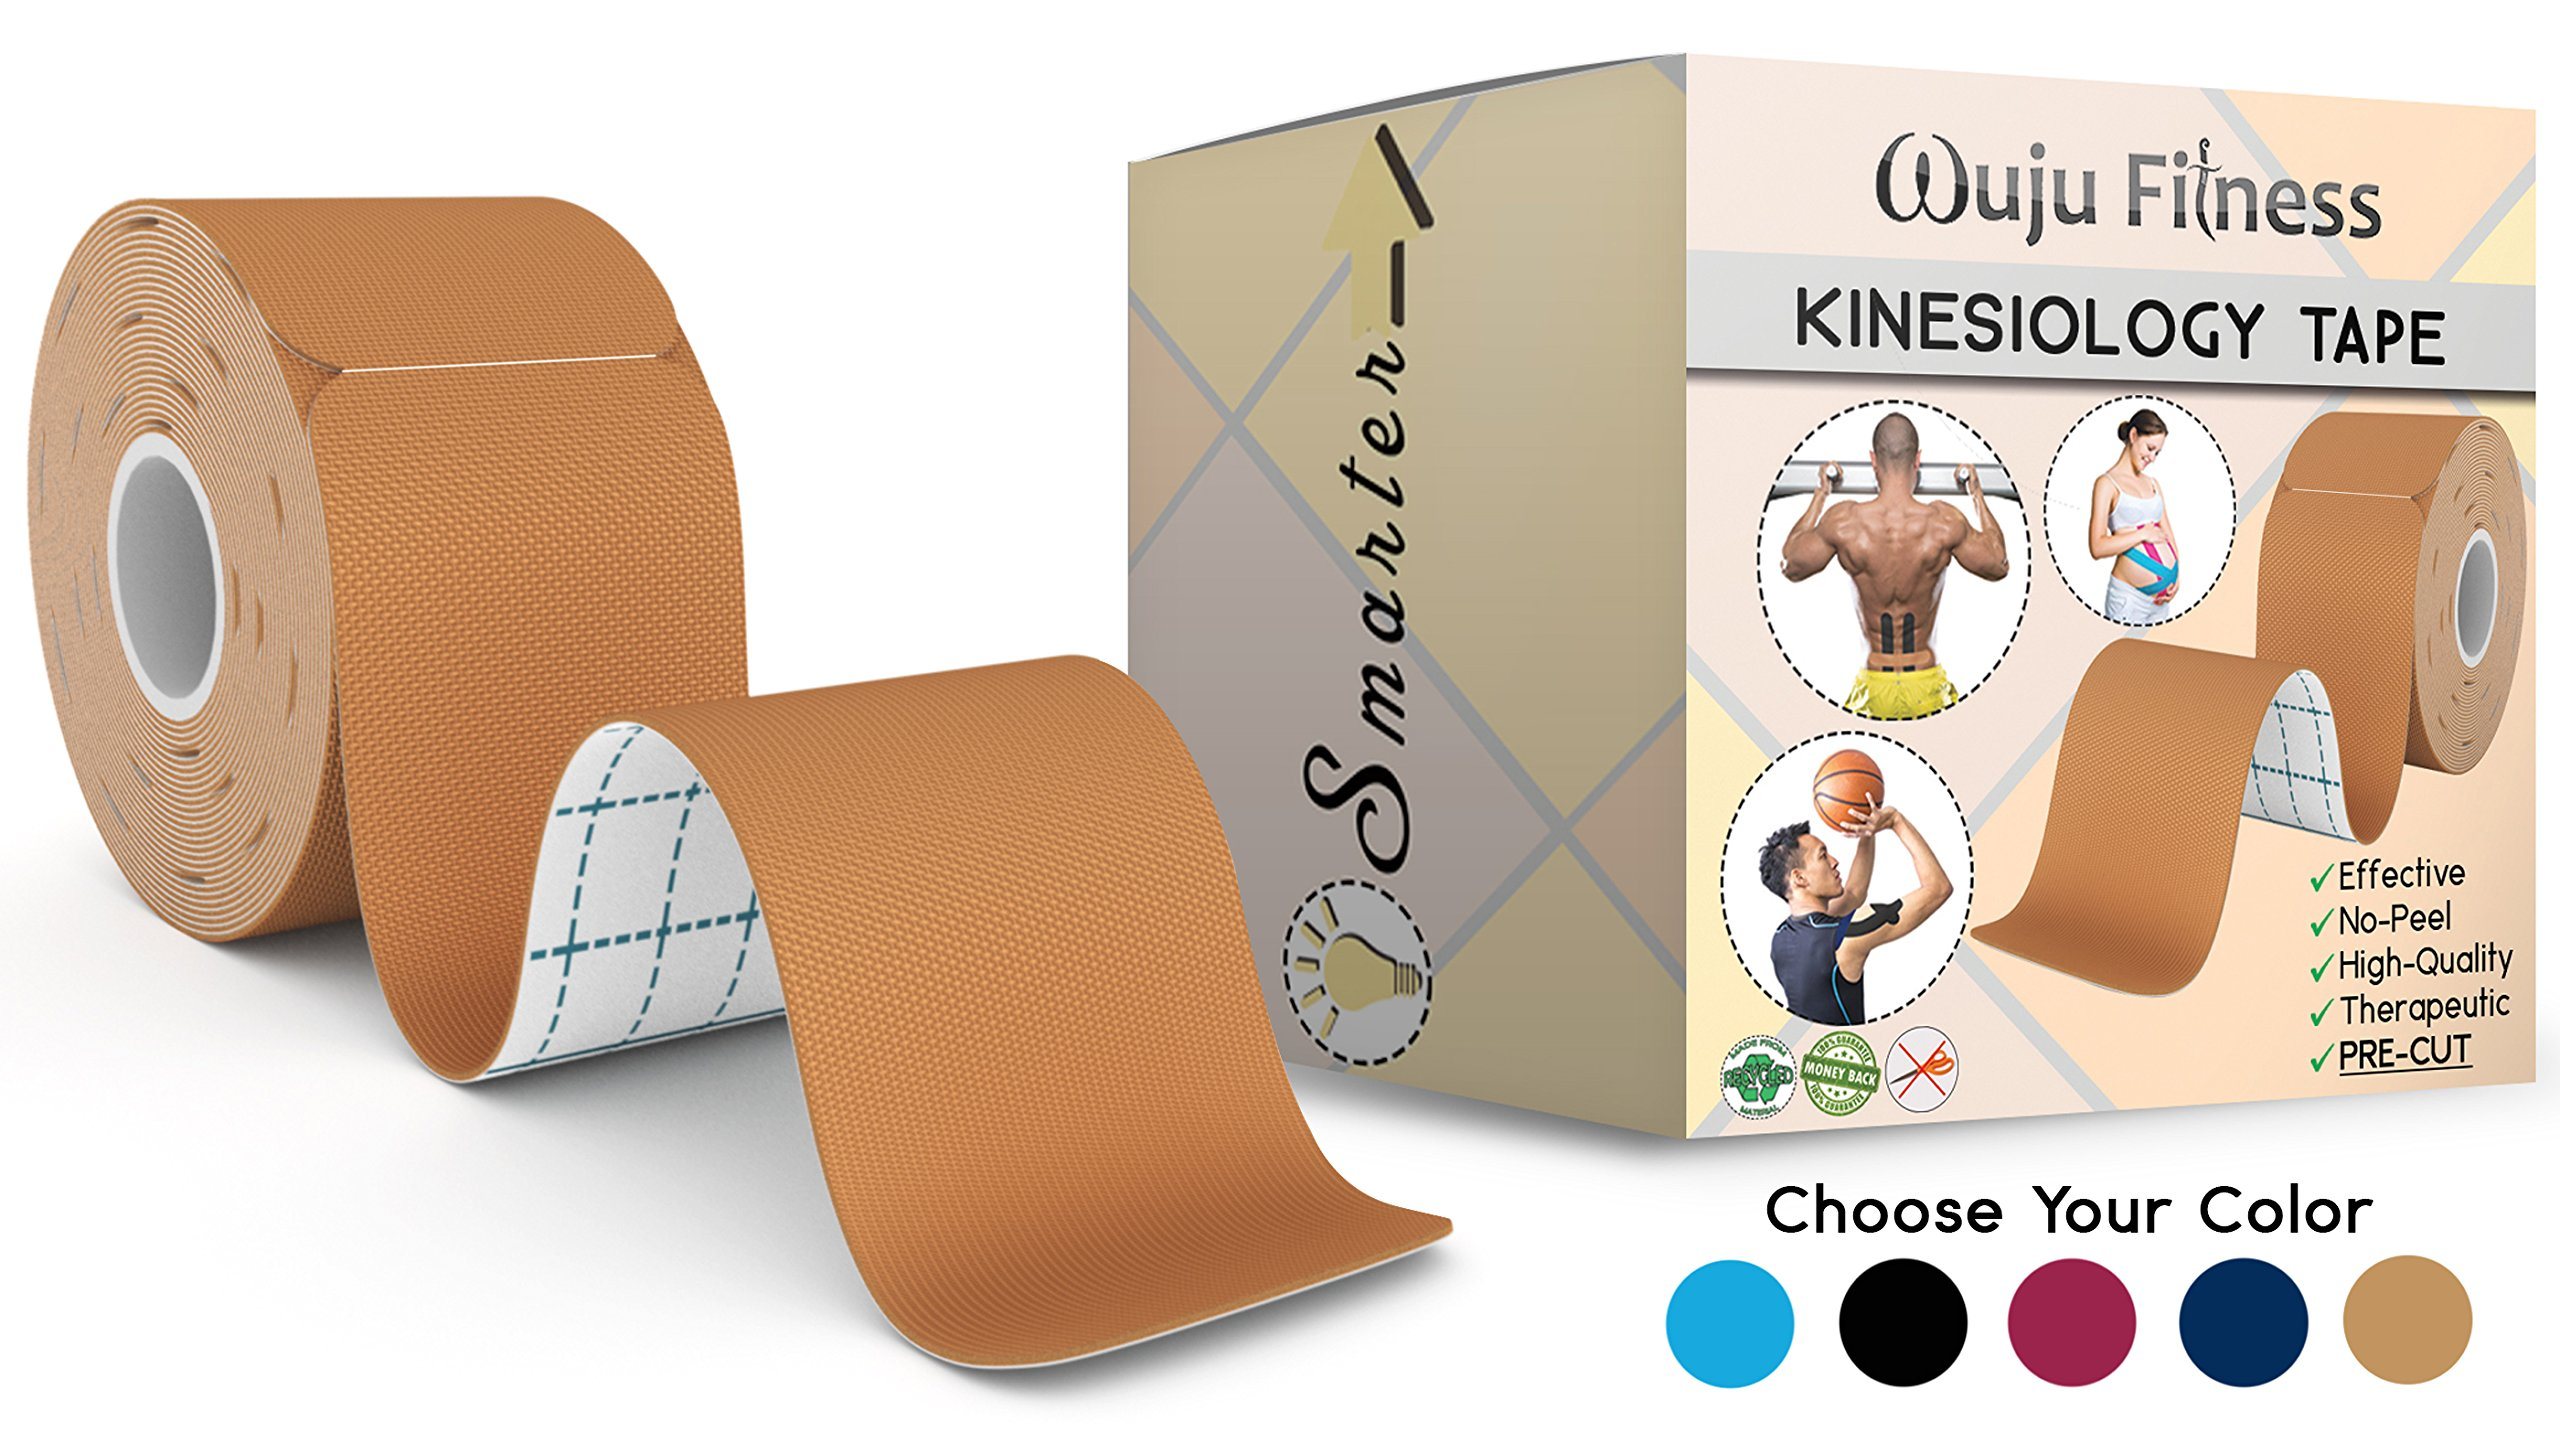 """Athletic Tape for First Aid Kit, Physical Support Therapy, Sports Exercises. Lower Back, Heel, Foot, Joint, Shoulder, Muscle and Plantar Fasciitis Pain Relief. 20 precut Nude KT strips 2""""x10"""